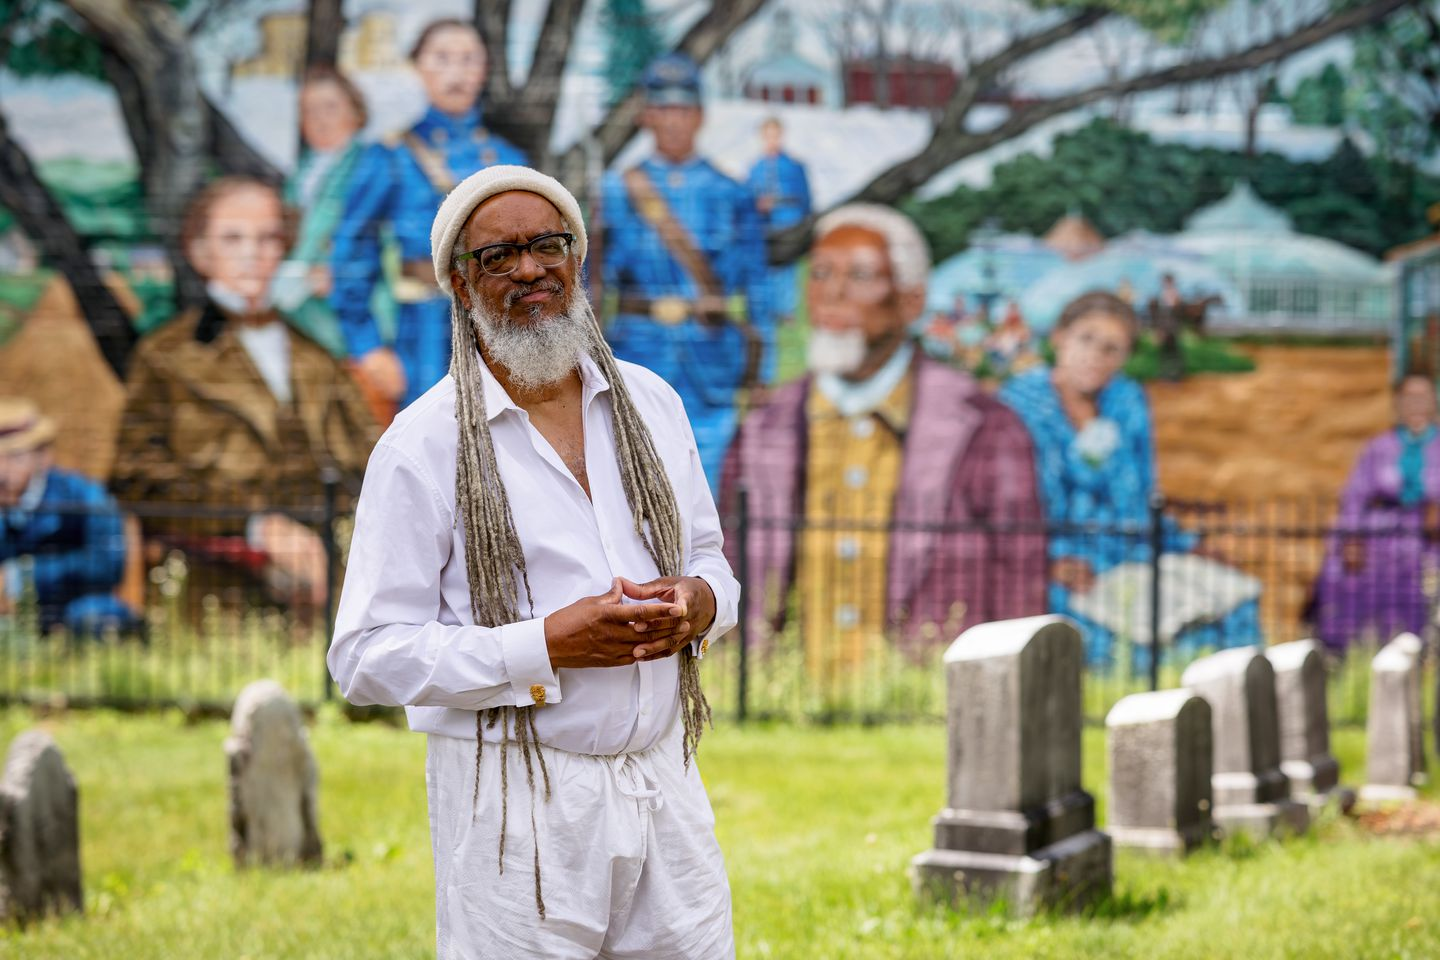 Amilcar Shabazz, an Africana studies professor at the University of Massachusetts Amherst, pictured in West Cemetery in Amherst. Some African American soldiers who fought in Texas during the Civil War are buried in the cemetery. Shabazz helped bring the Juneteenth holiday to Massachusetts.